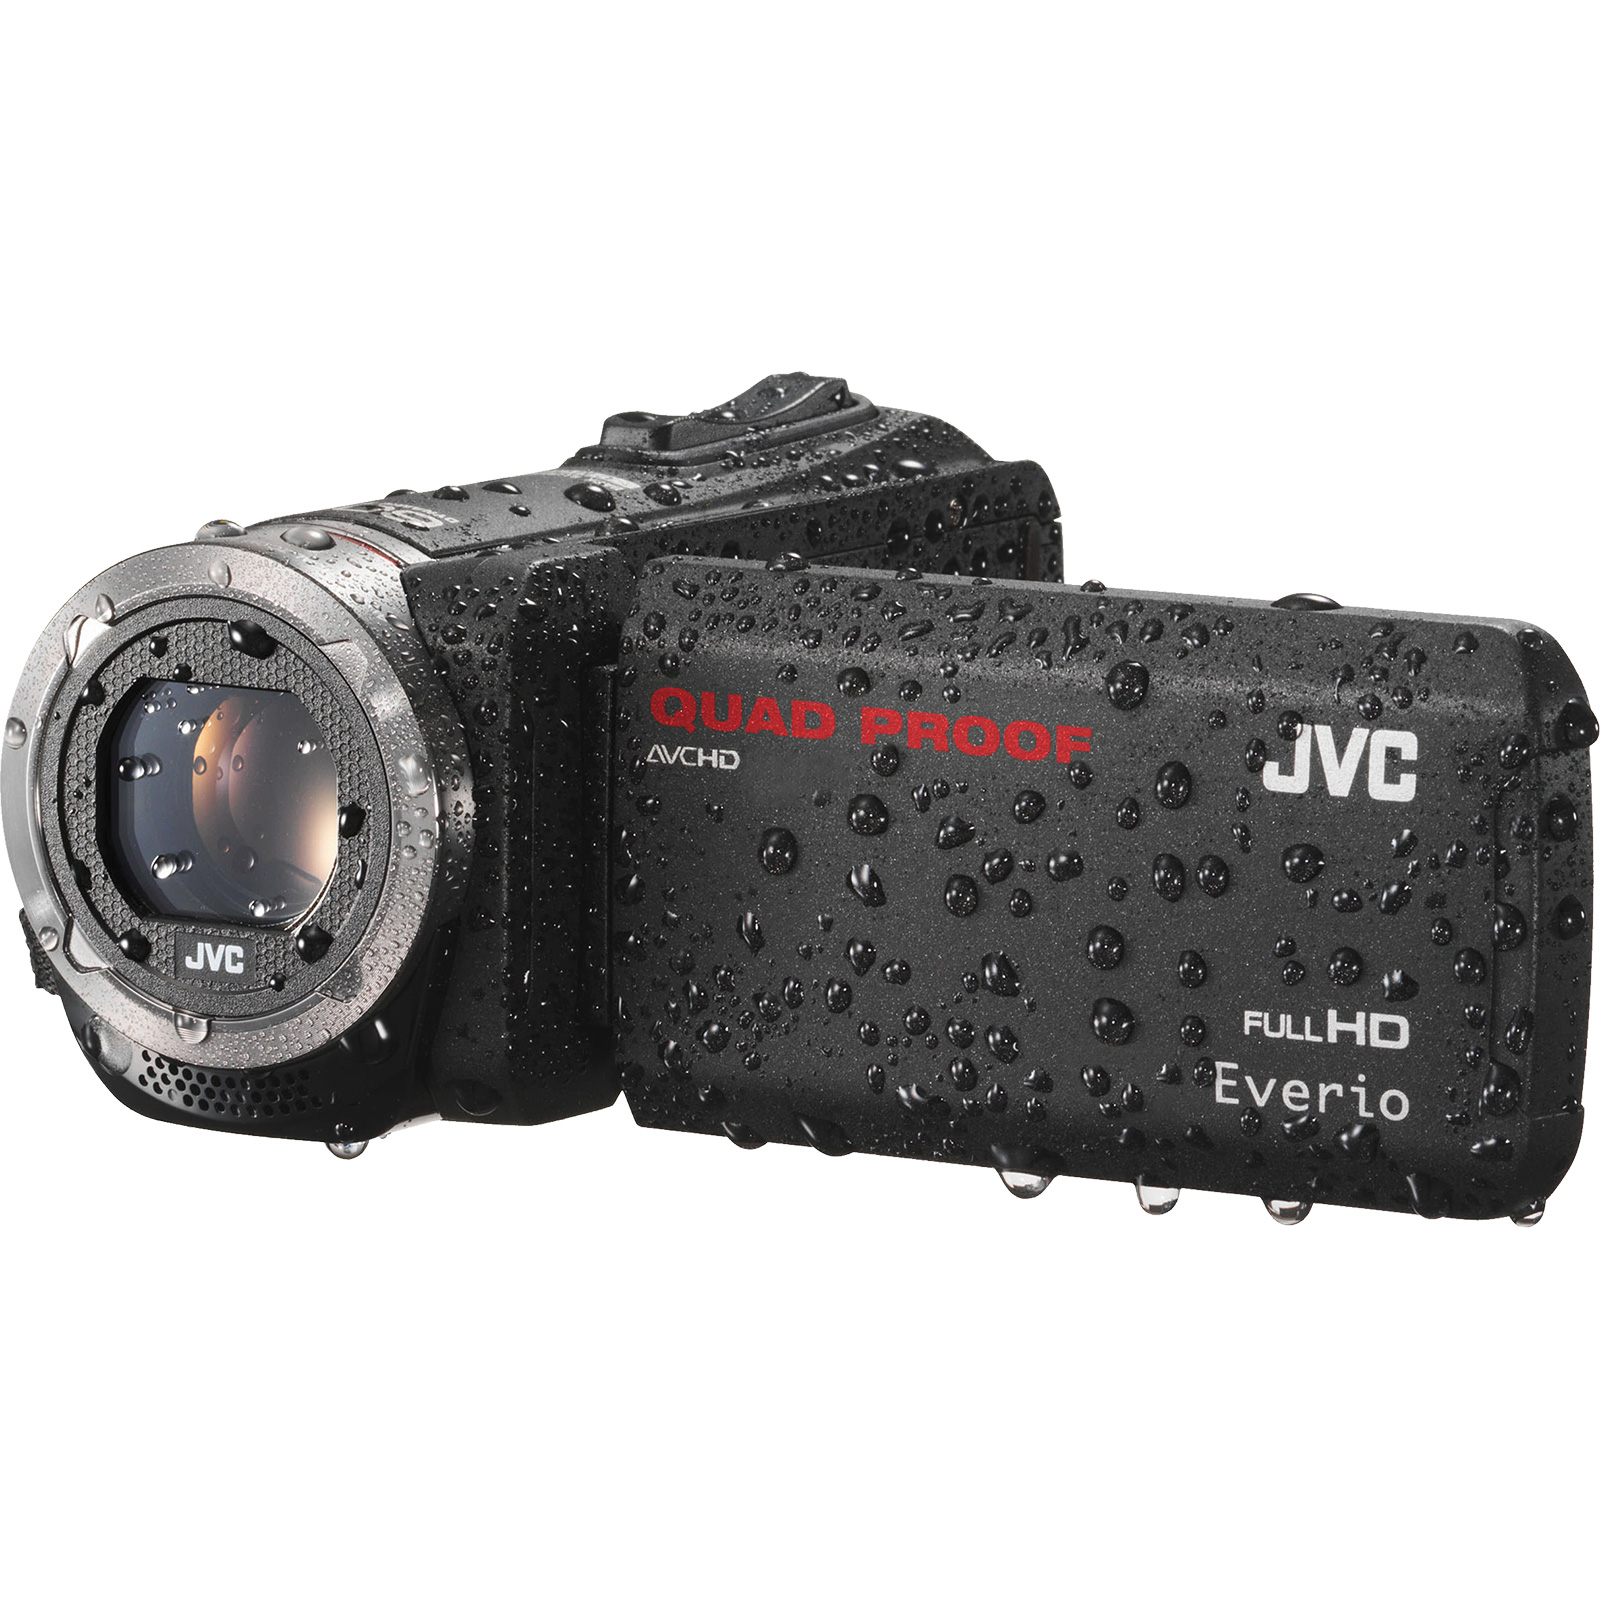 JVC Everio GZ-R320 Quad Proof Full HD Digital Video Camera Camcorder (Black)